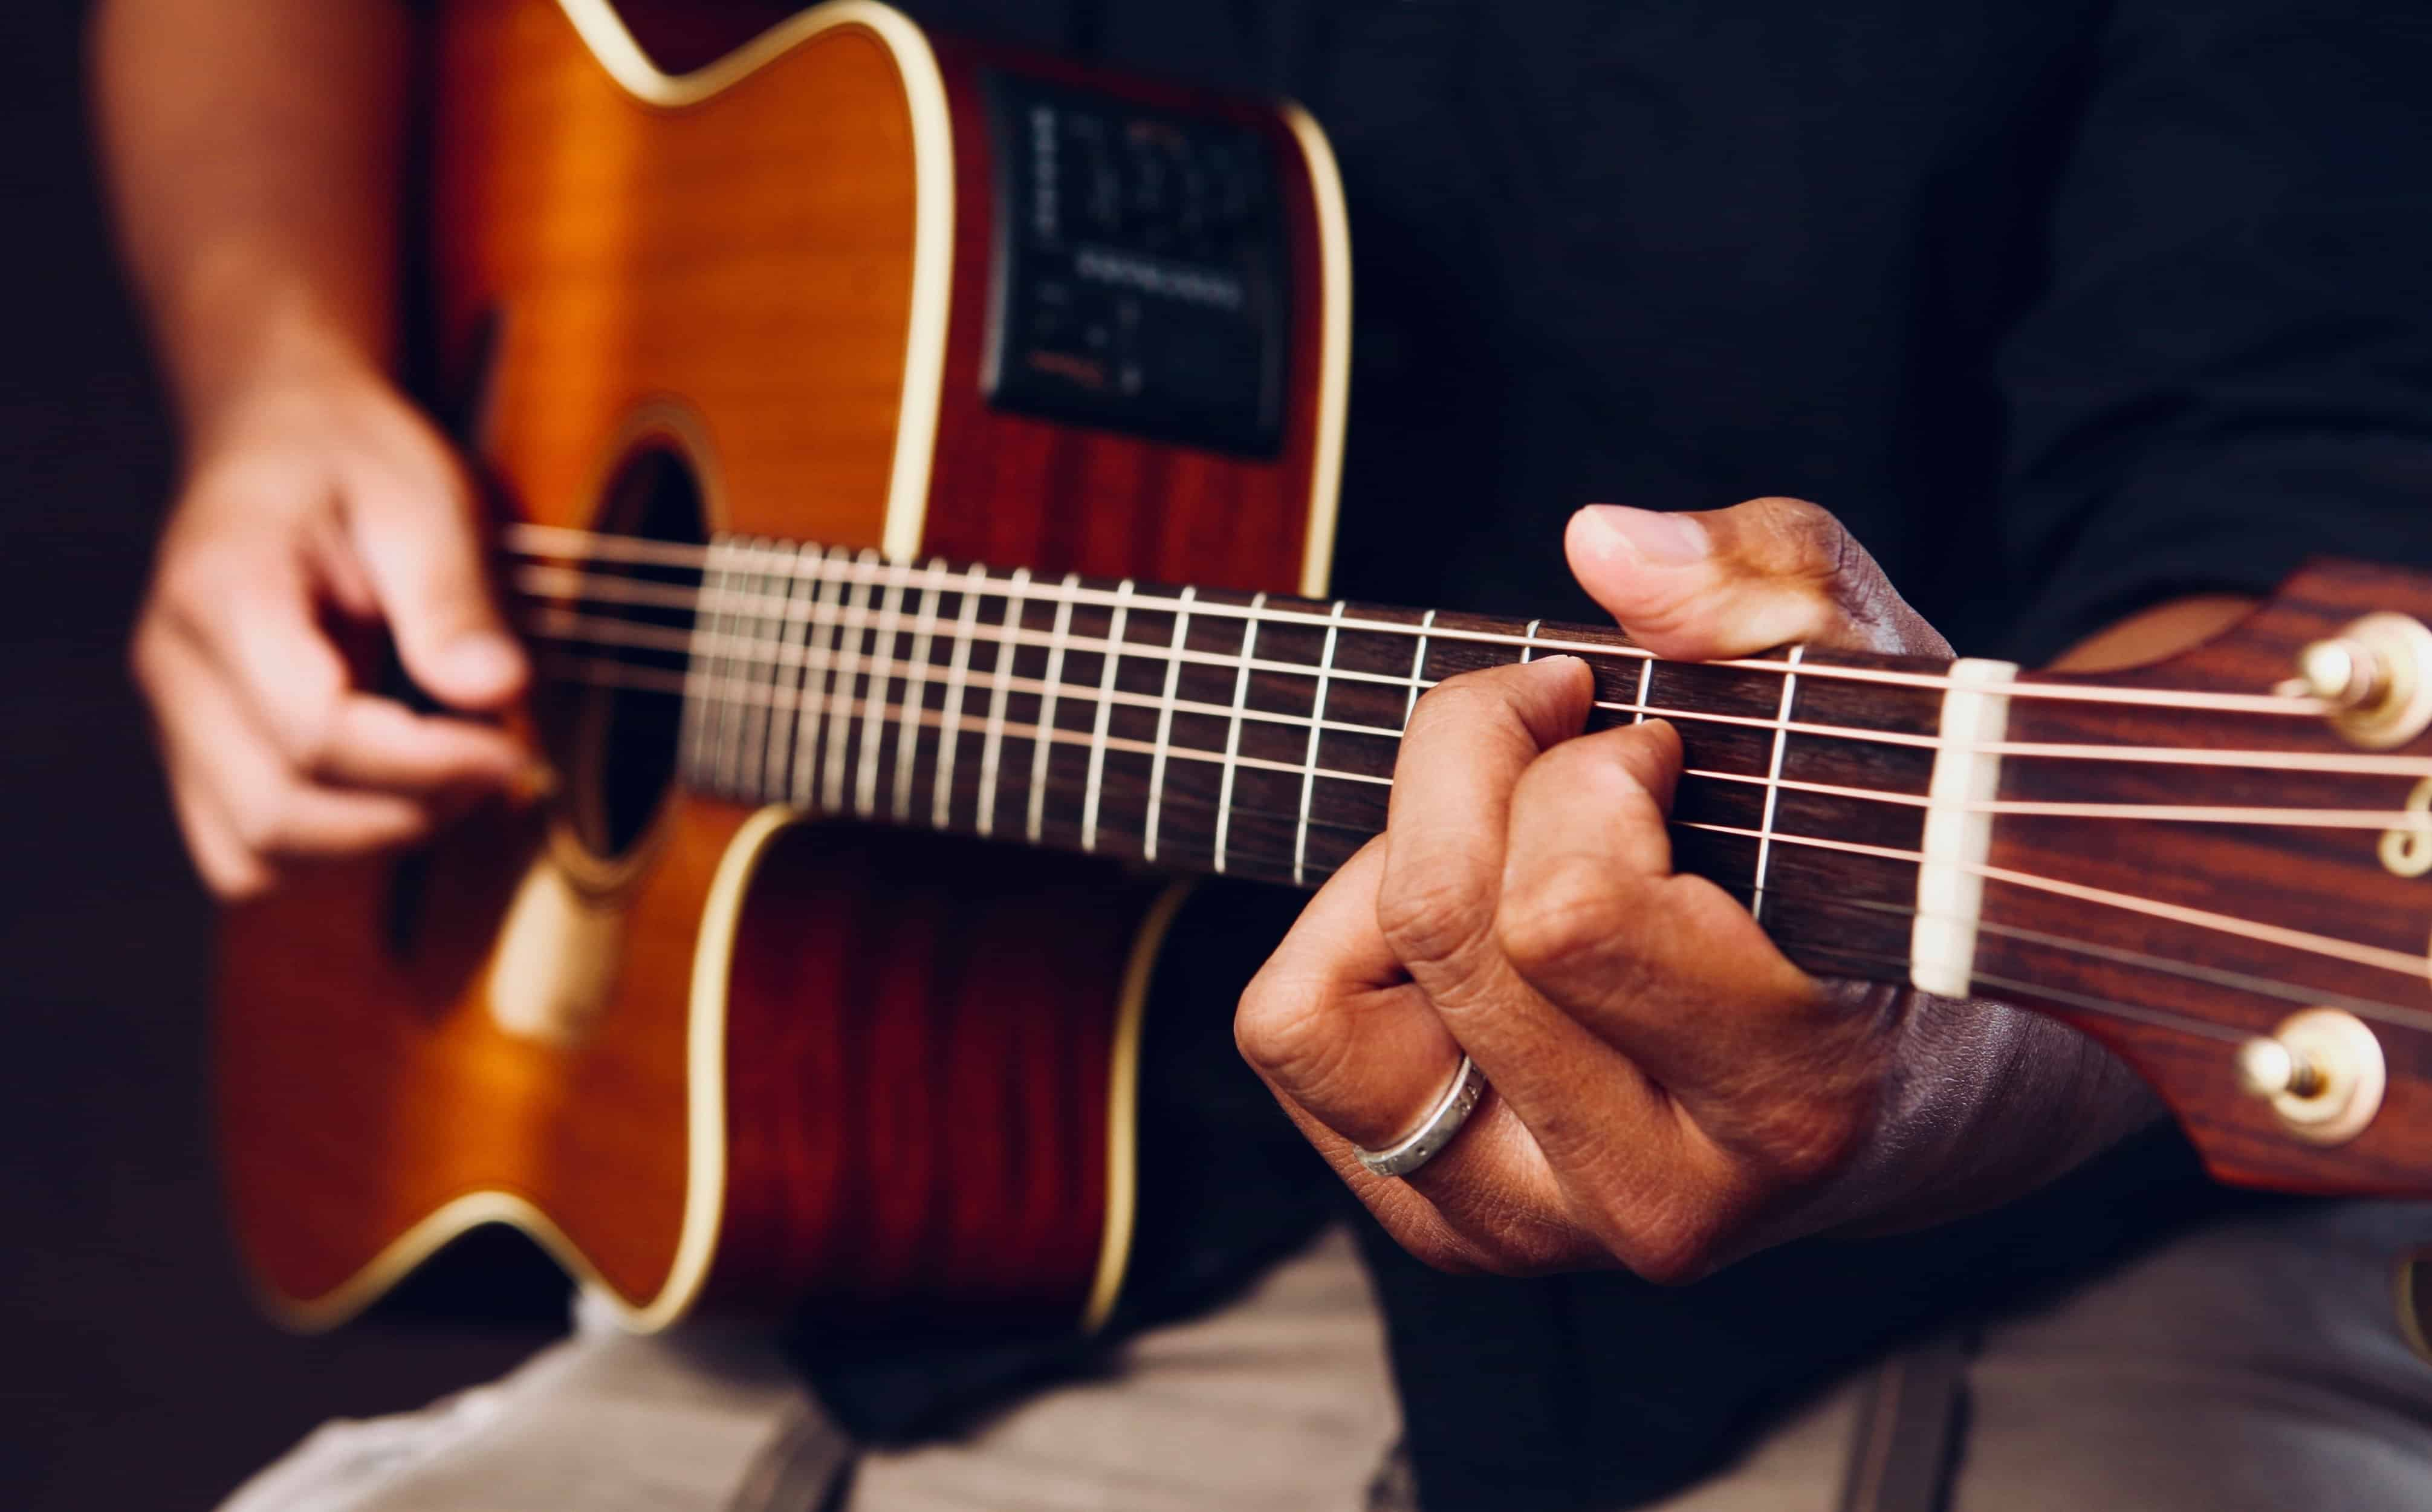 8 Great Offline Apps for Learning Guitar